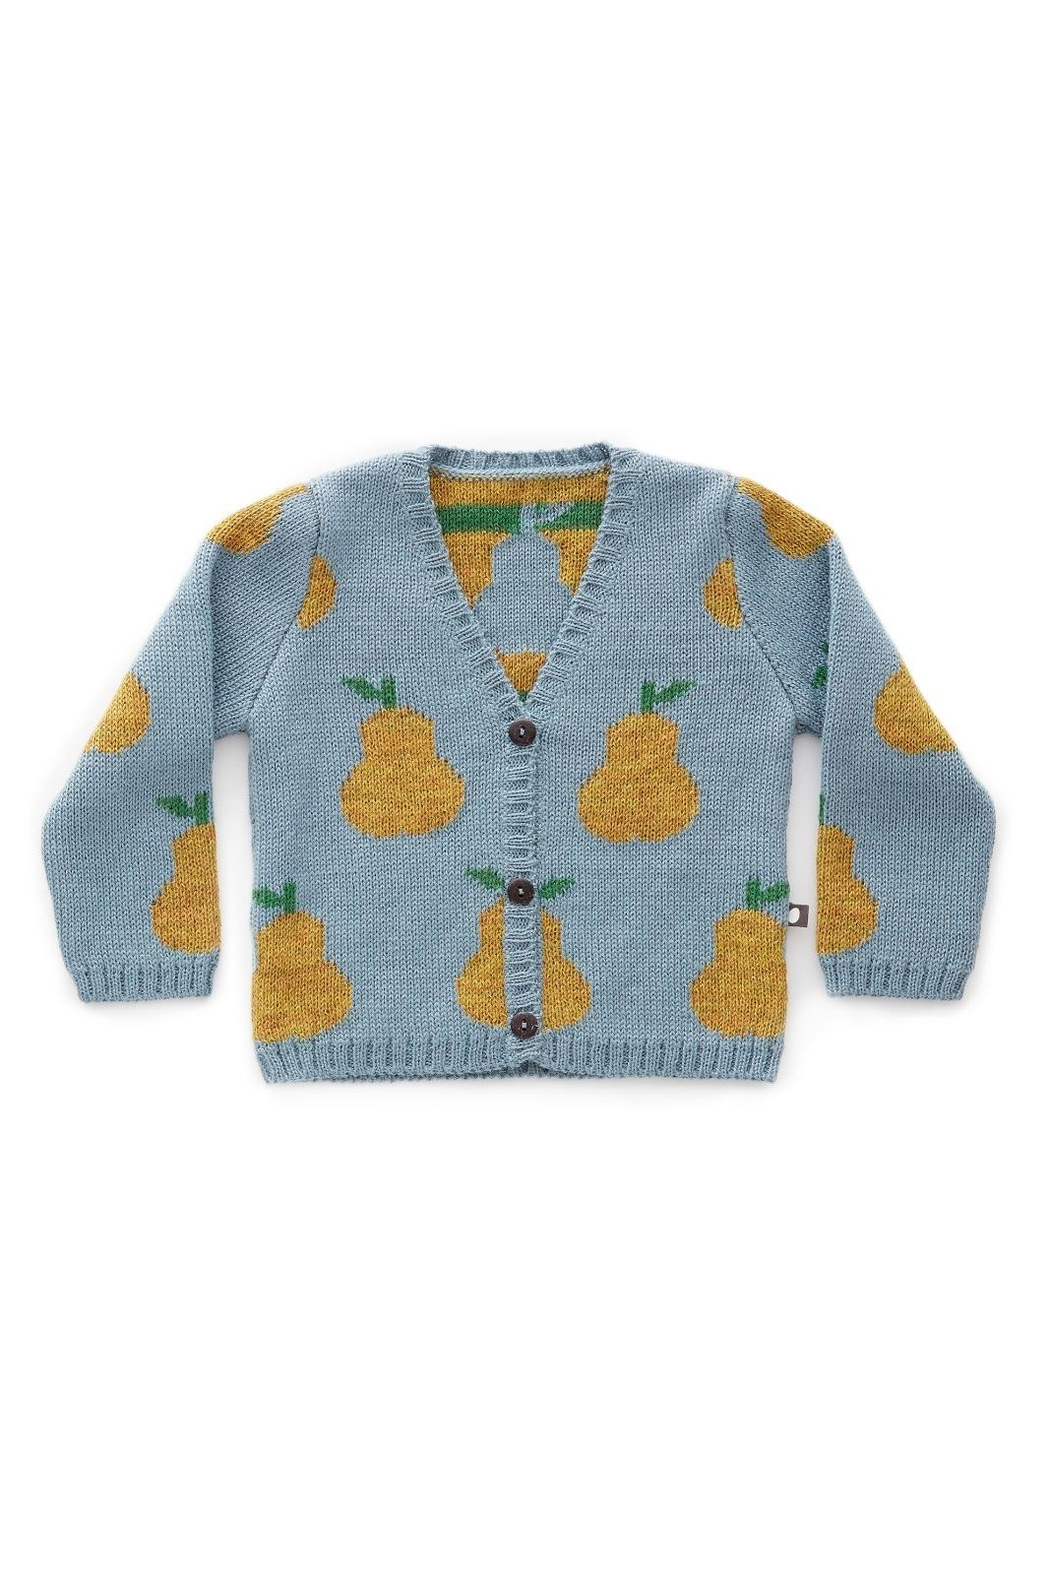 Oeuf Pear Kids' Cardigan - Front Cropped Image